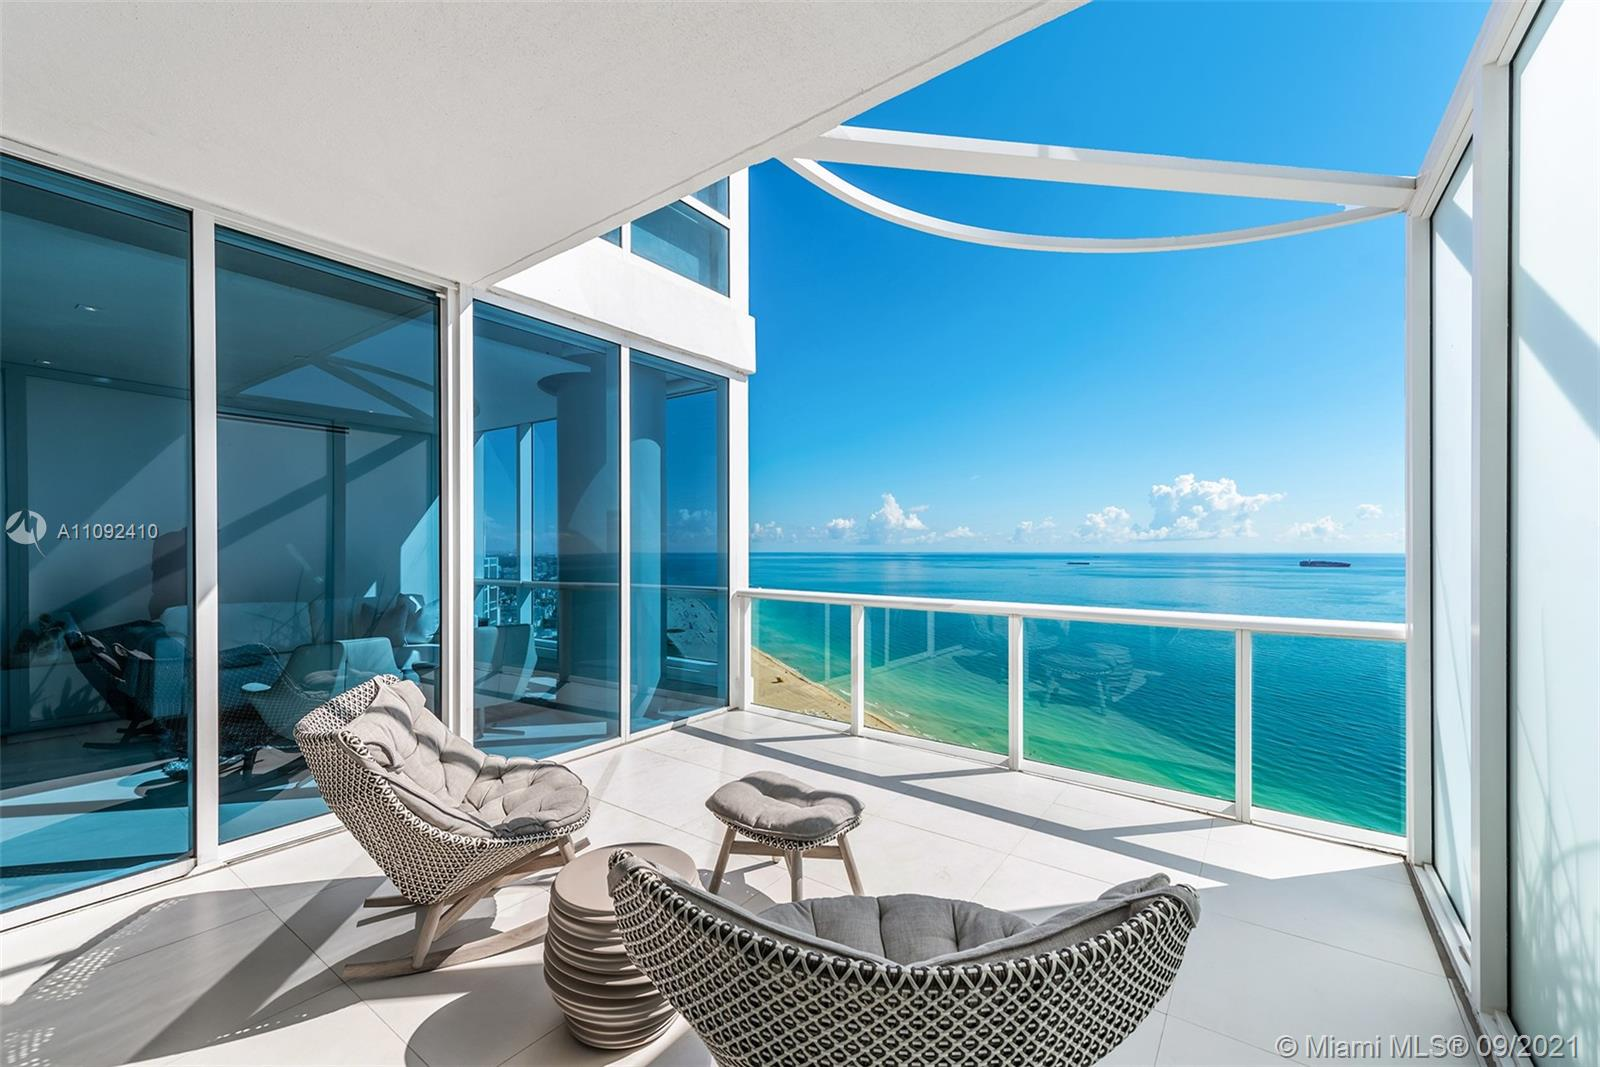 100 S Pointe Dr, Unit #3605 Luxury Real Estate